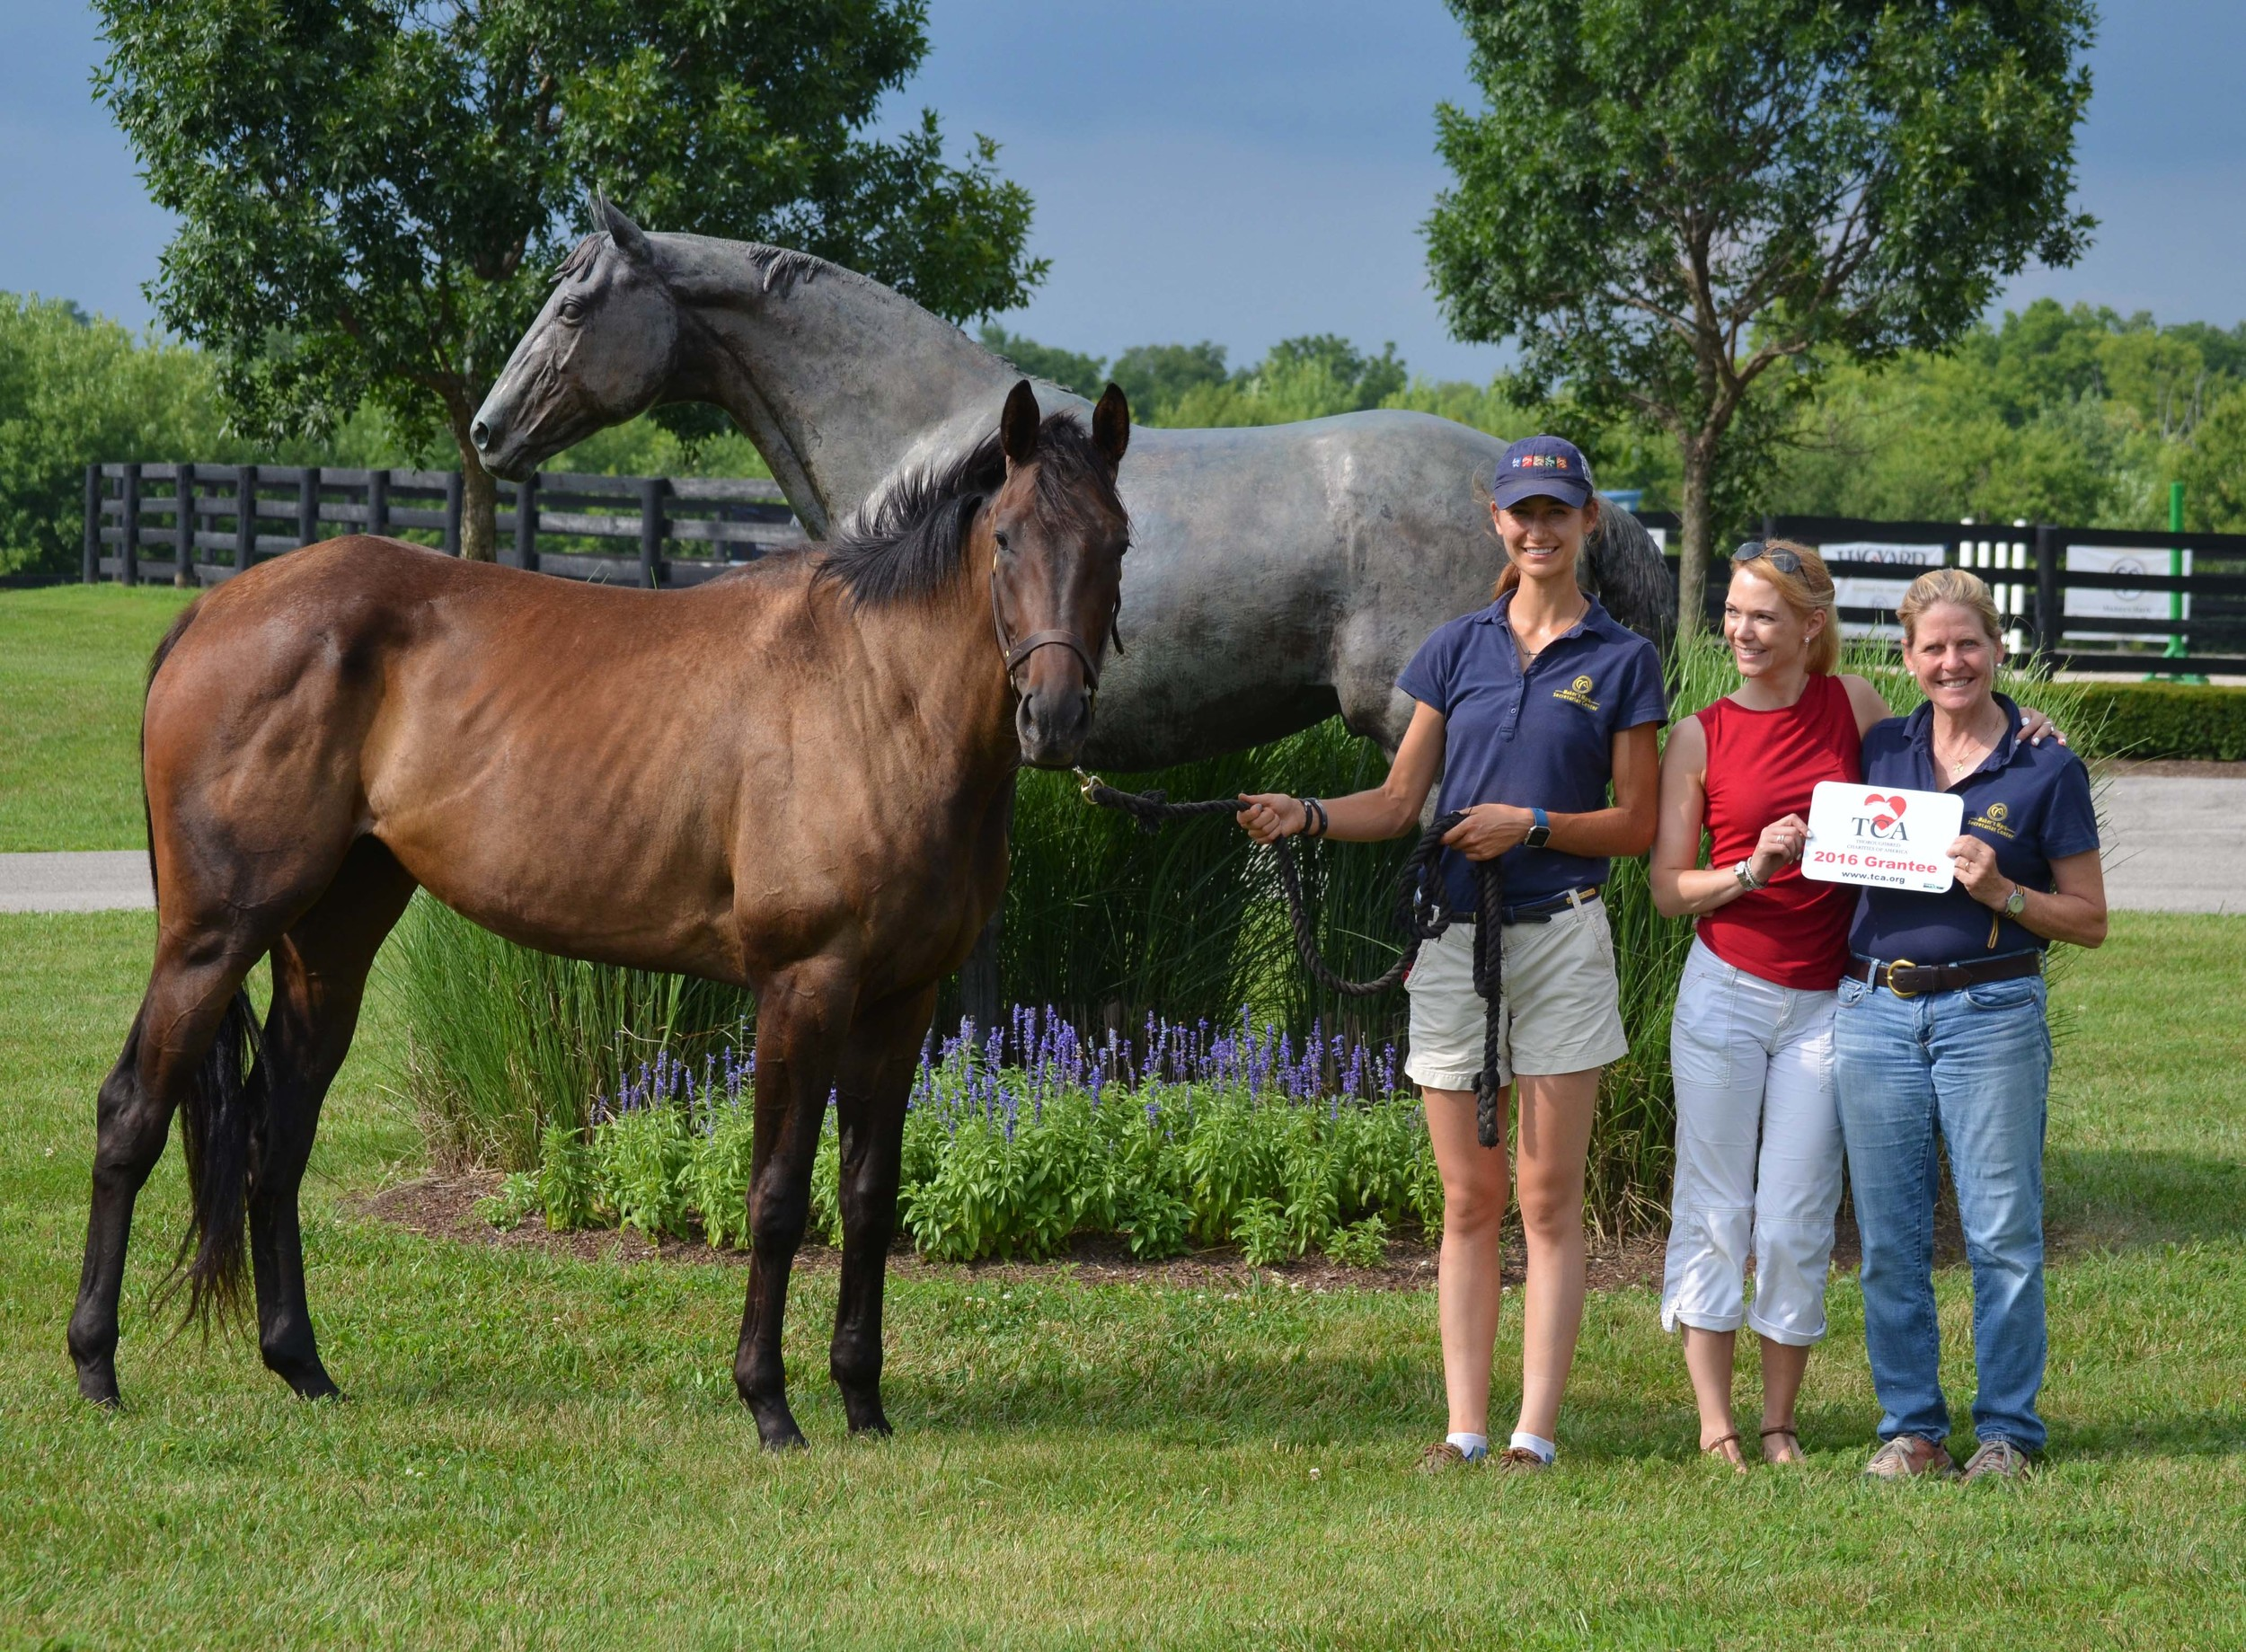 TCA Executive Director Erin Crady (middle) presents the grant award to MMSC Director Susanna Thomas (right) and MMSC Barn Manager/Trainer Erin Strader (left).